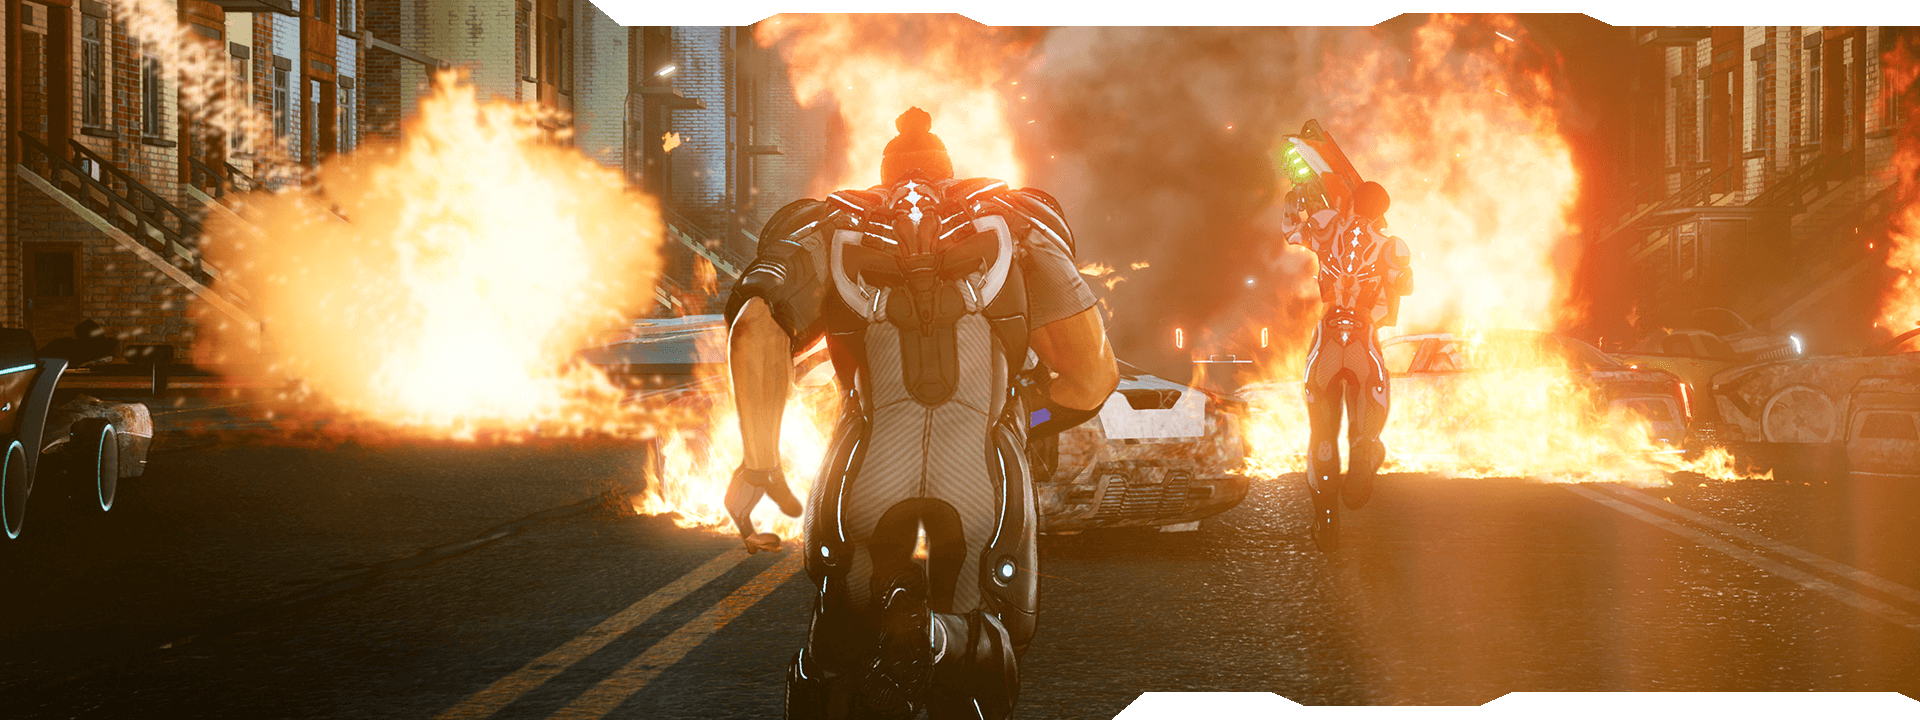 Crackdown 3 boom goes the dynamite